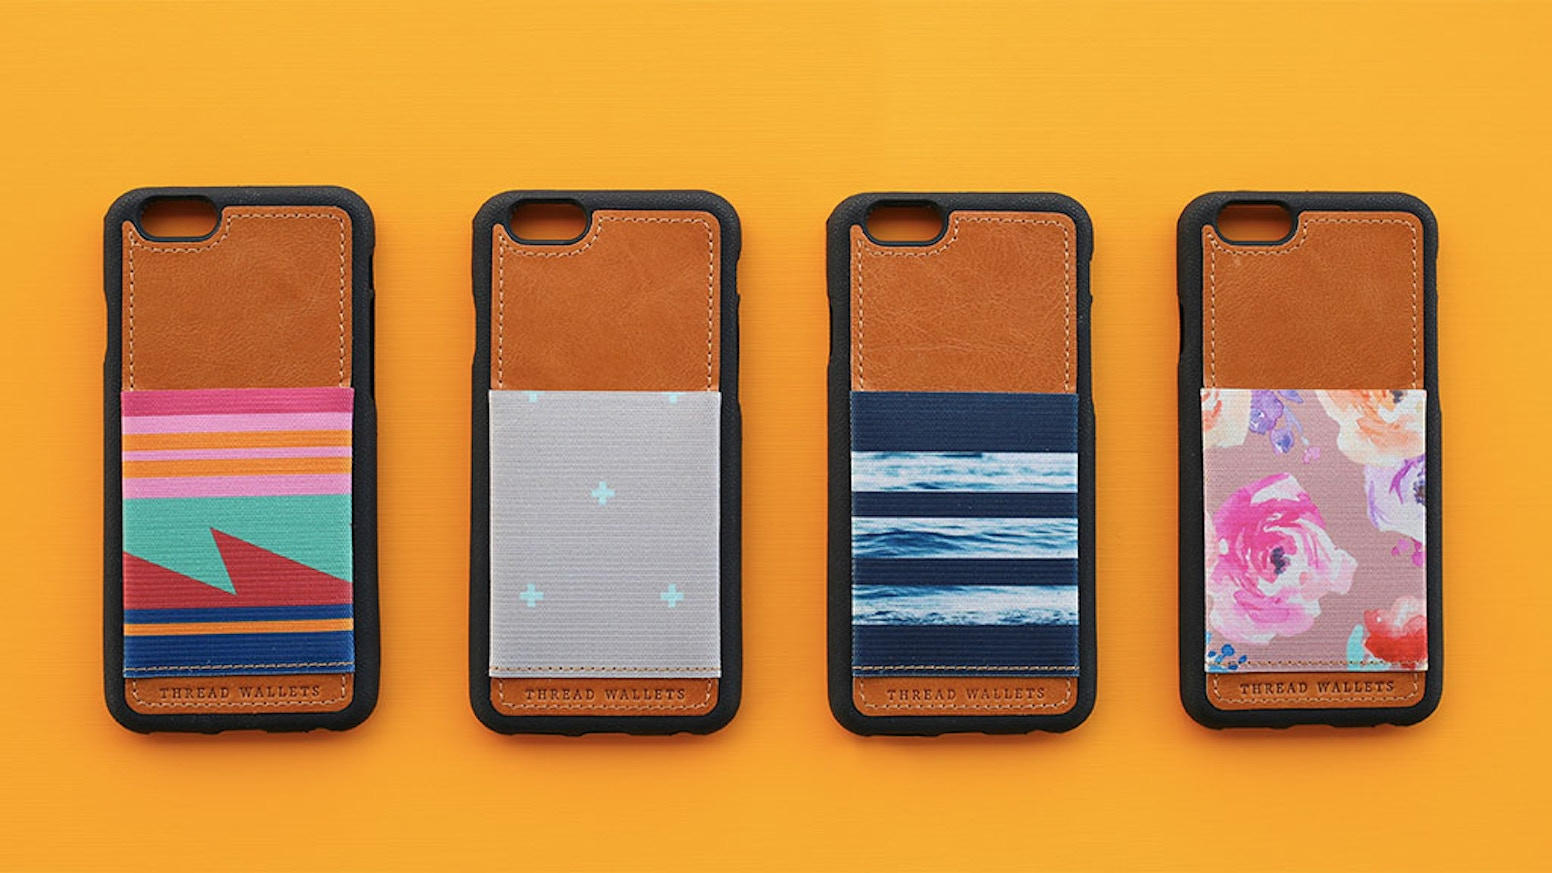 If you're looking for STYLE and FUNCTIONALITY, now you can have both. Available for iPhone 6/6s, 6+, 7 and 7+.